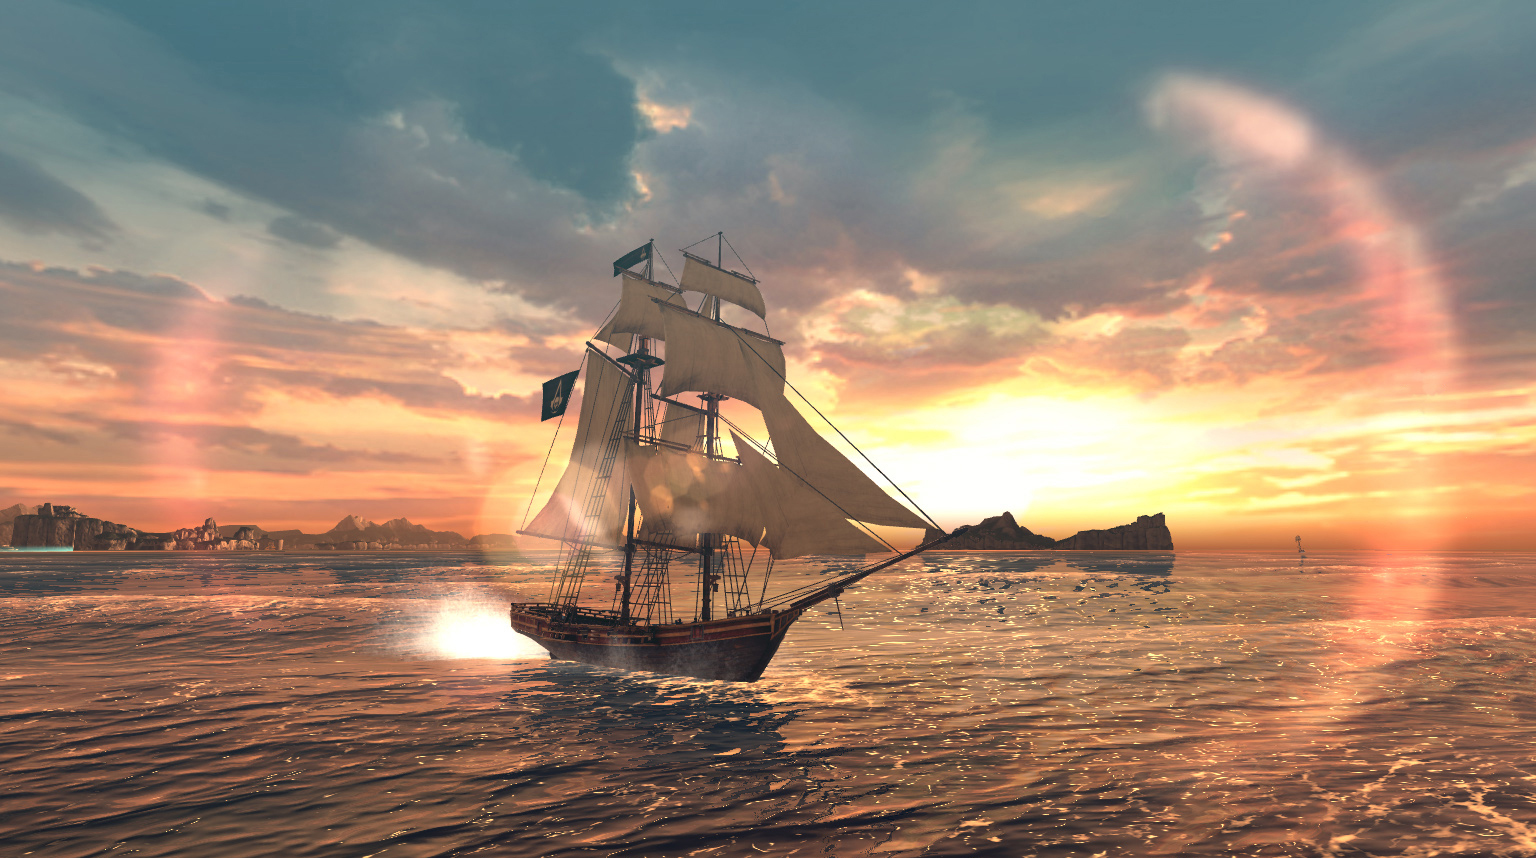 Assassin's Creed Pirates Set One Year After Assassin's Creed 4 #28805